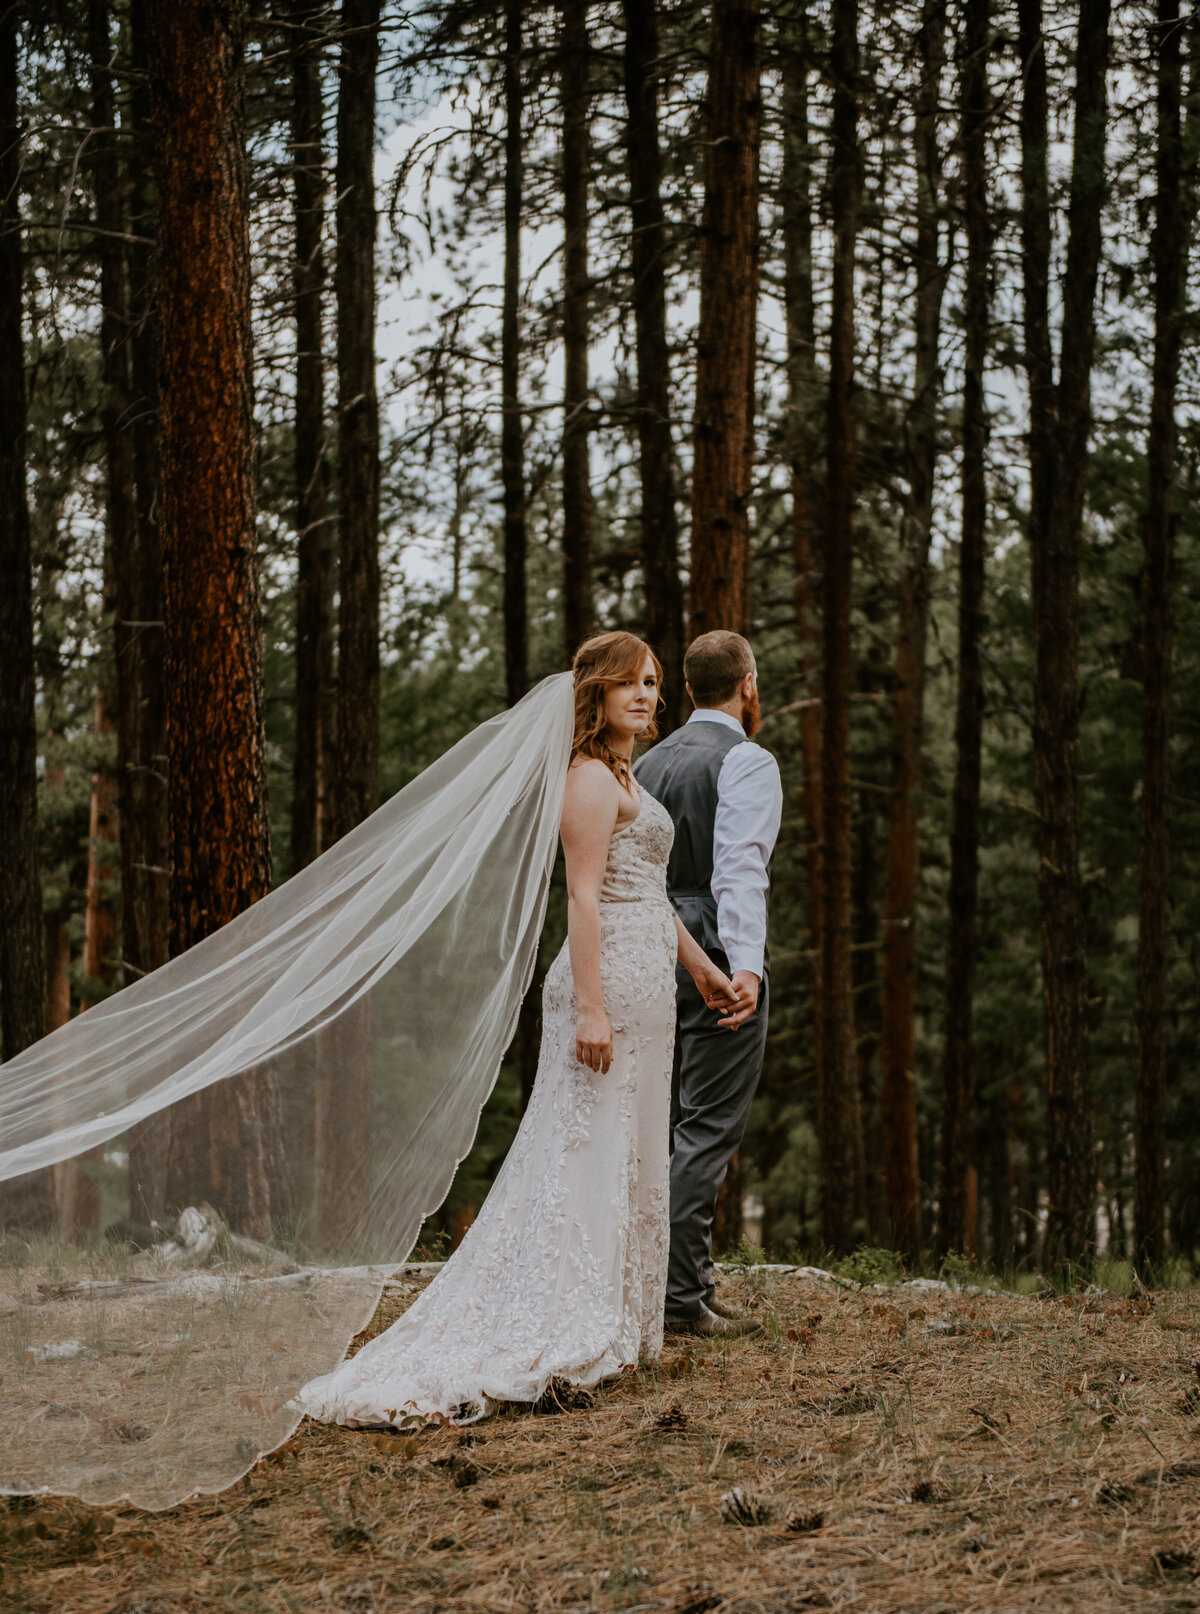 ochoco-forest-central-oregon-elopement-pnw-woods-wedding-covid-bend-photographer-inspiration1705